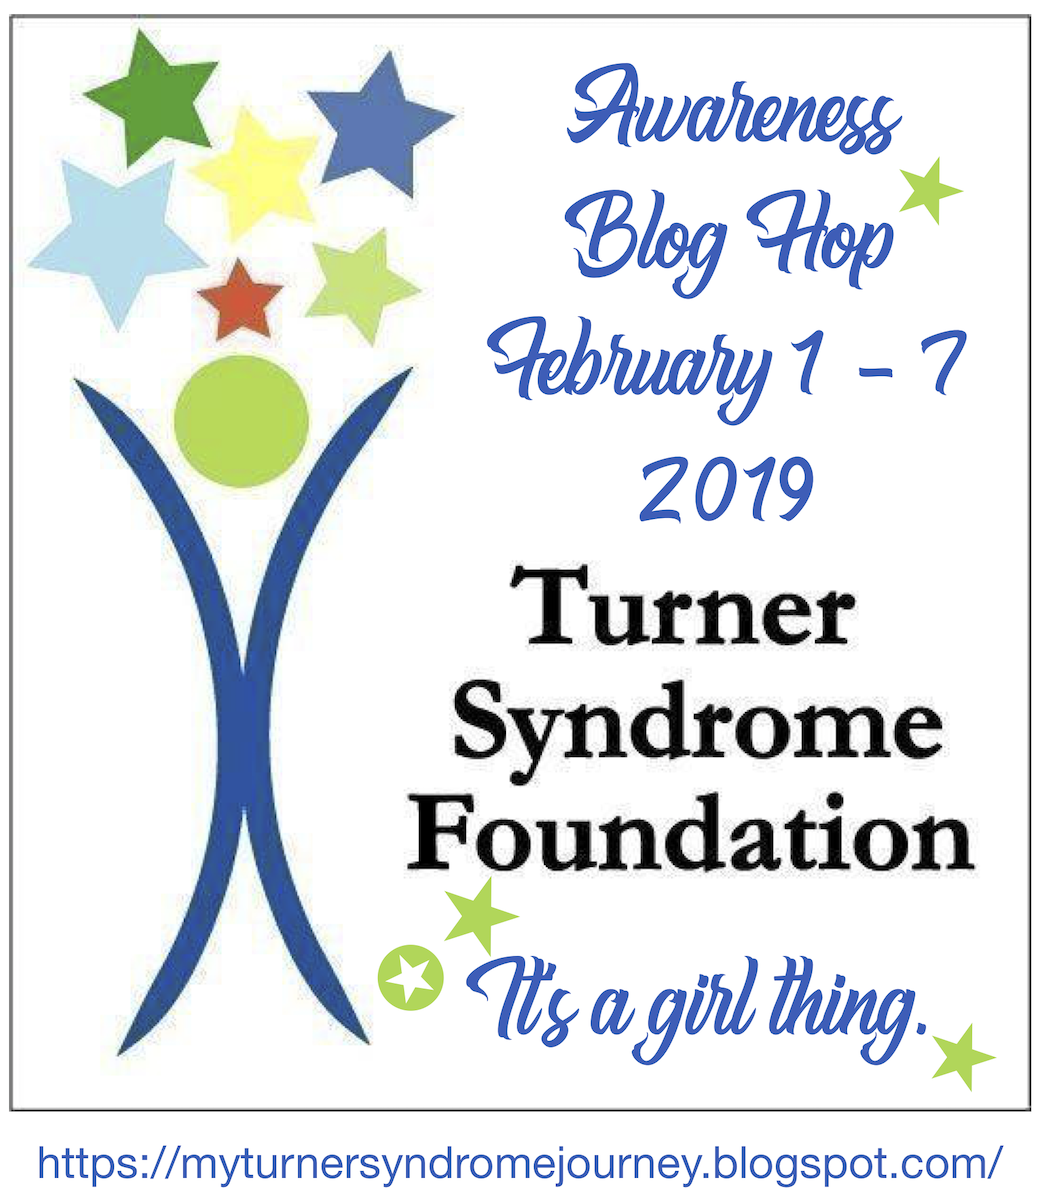 Turner Syndrome Blog Hop